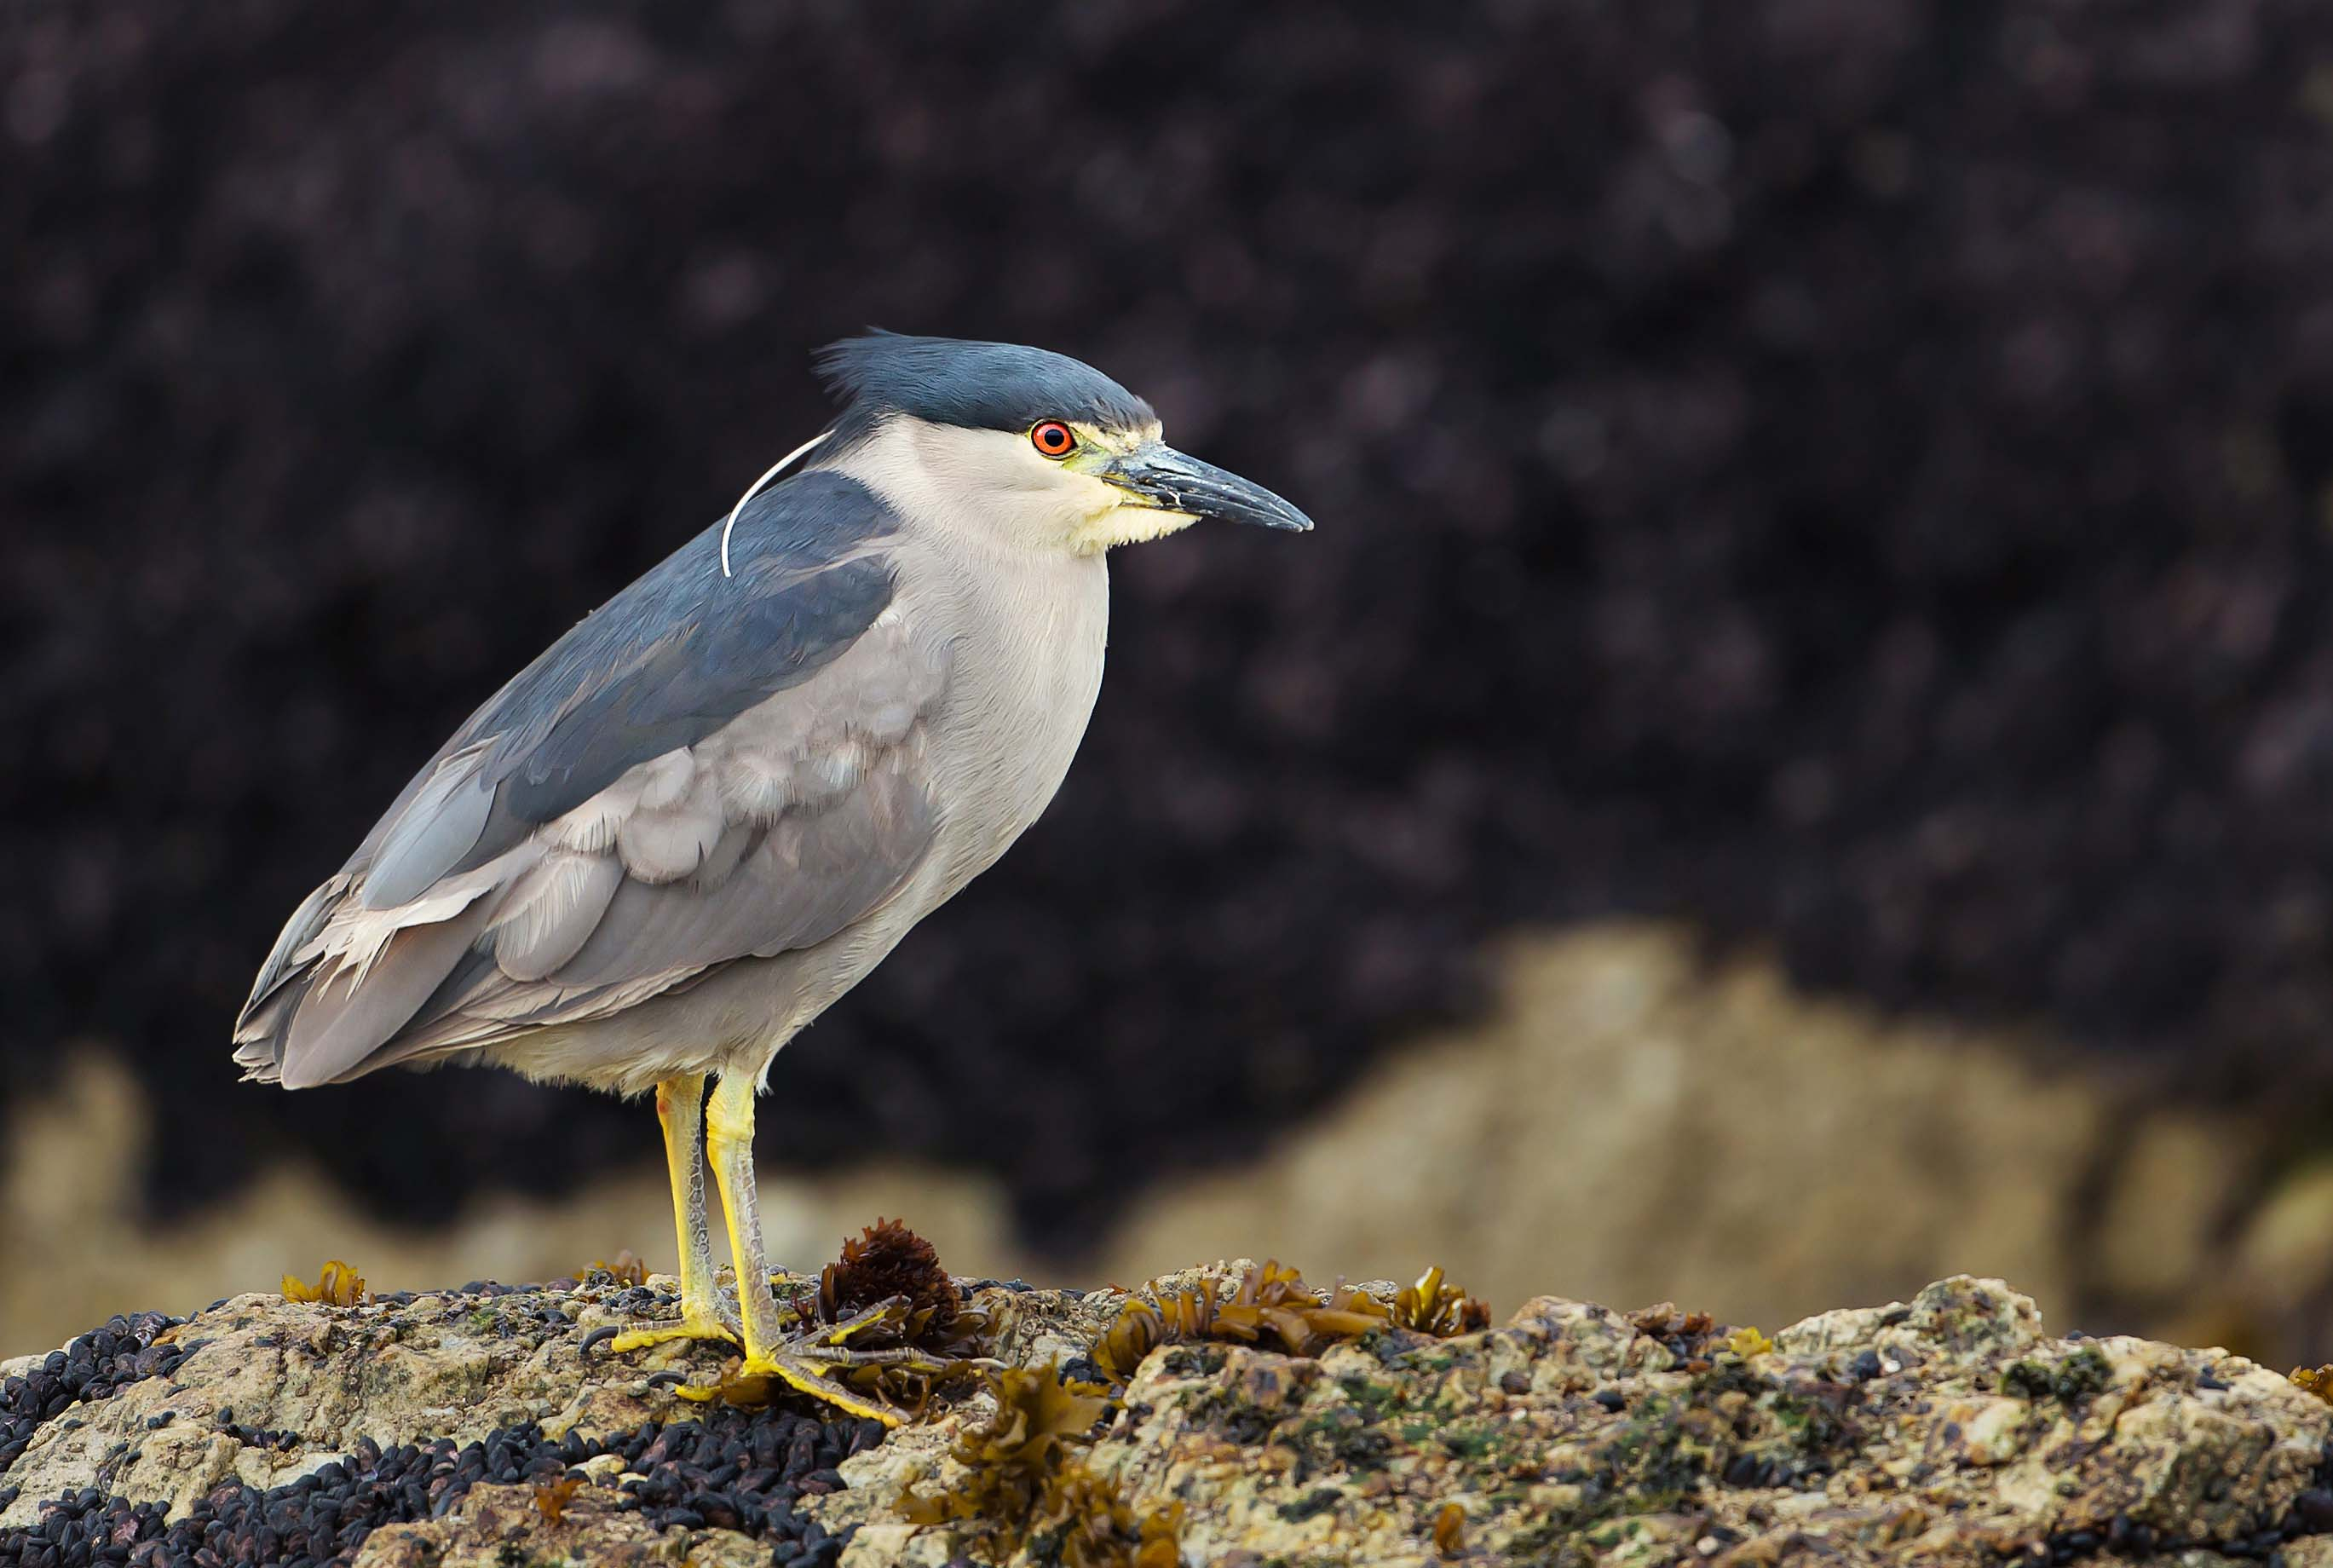 Close up of a black-crowned night heron standing on a rocky coast